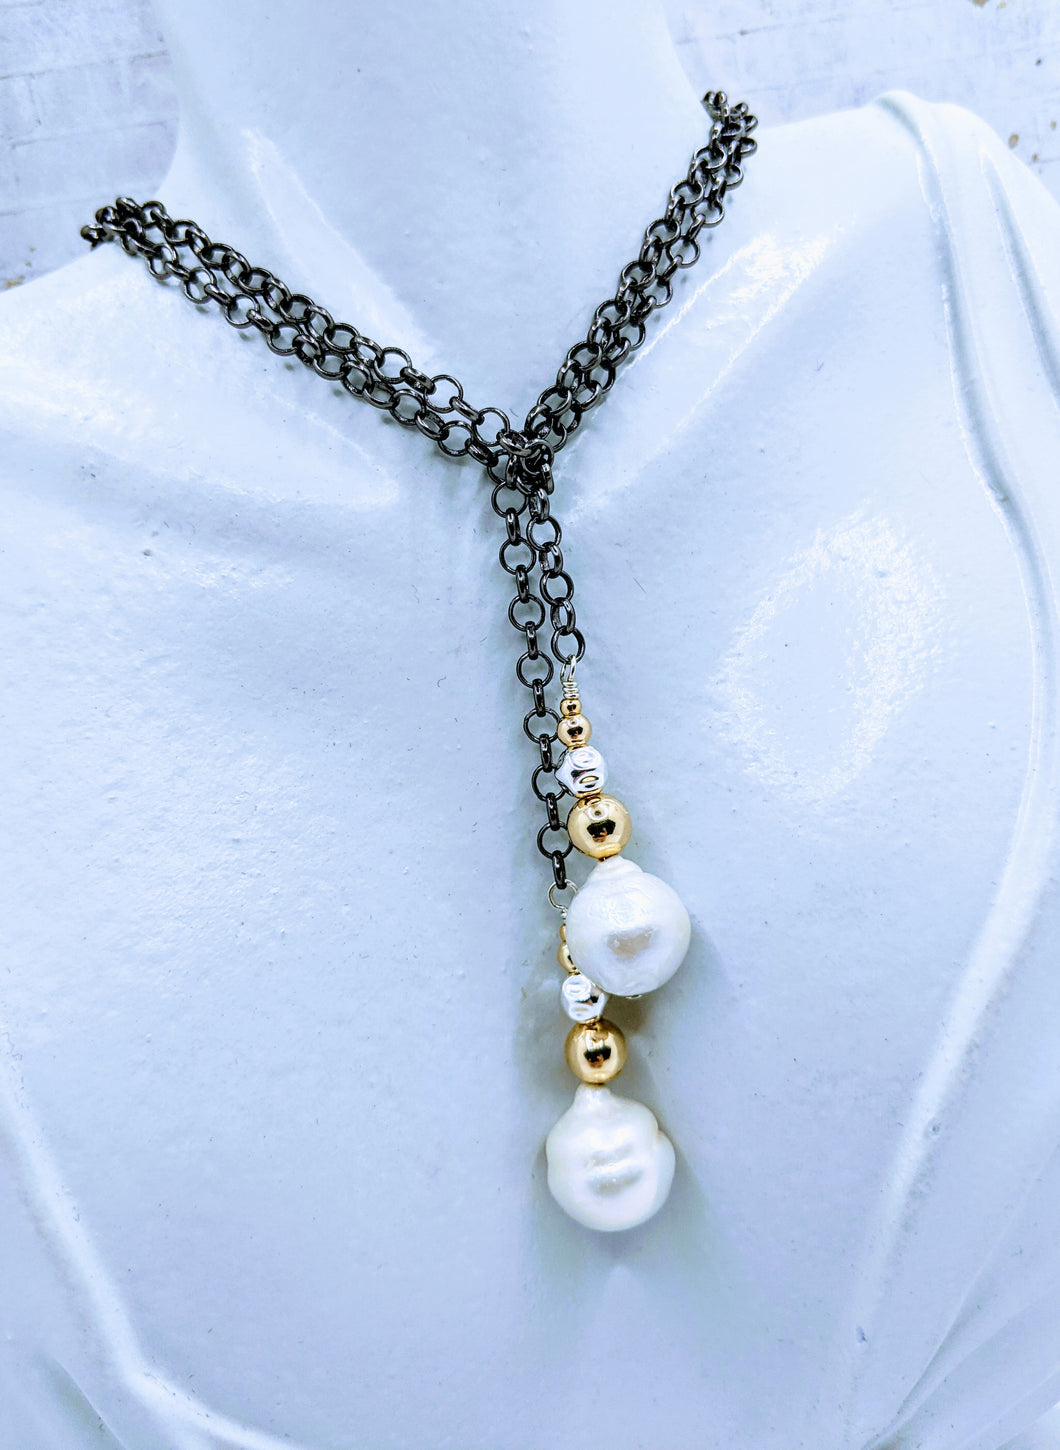 Gunmetal chain and pearl lariat - 43